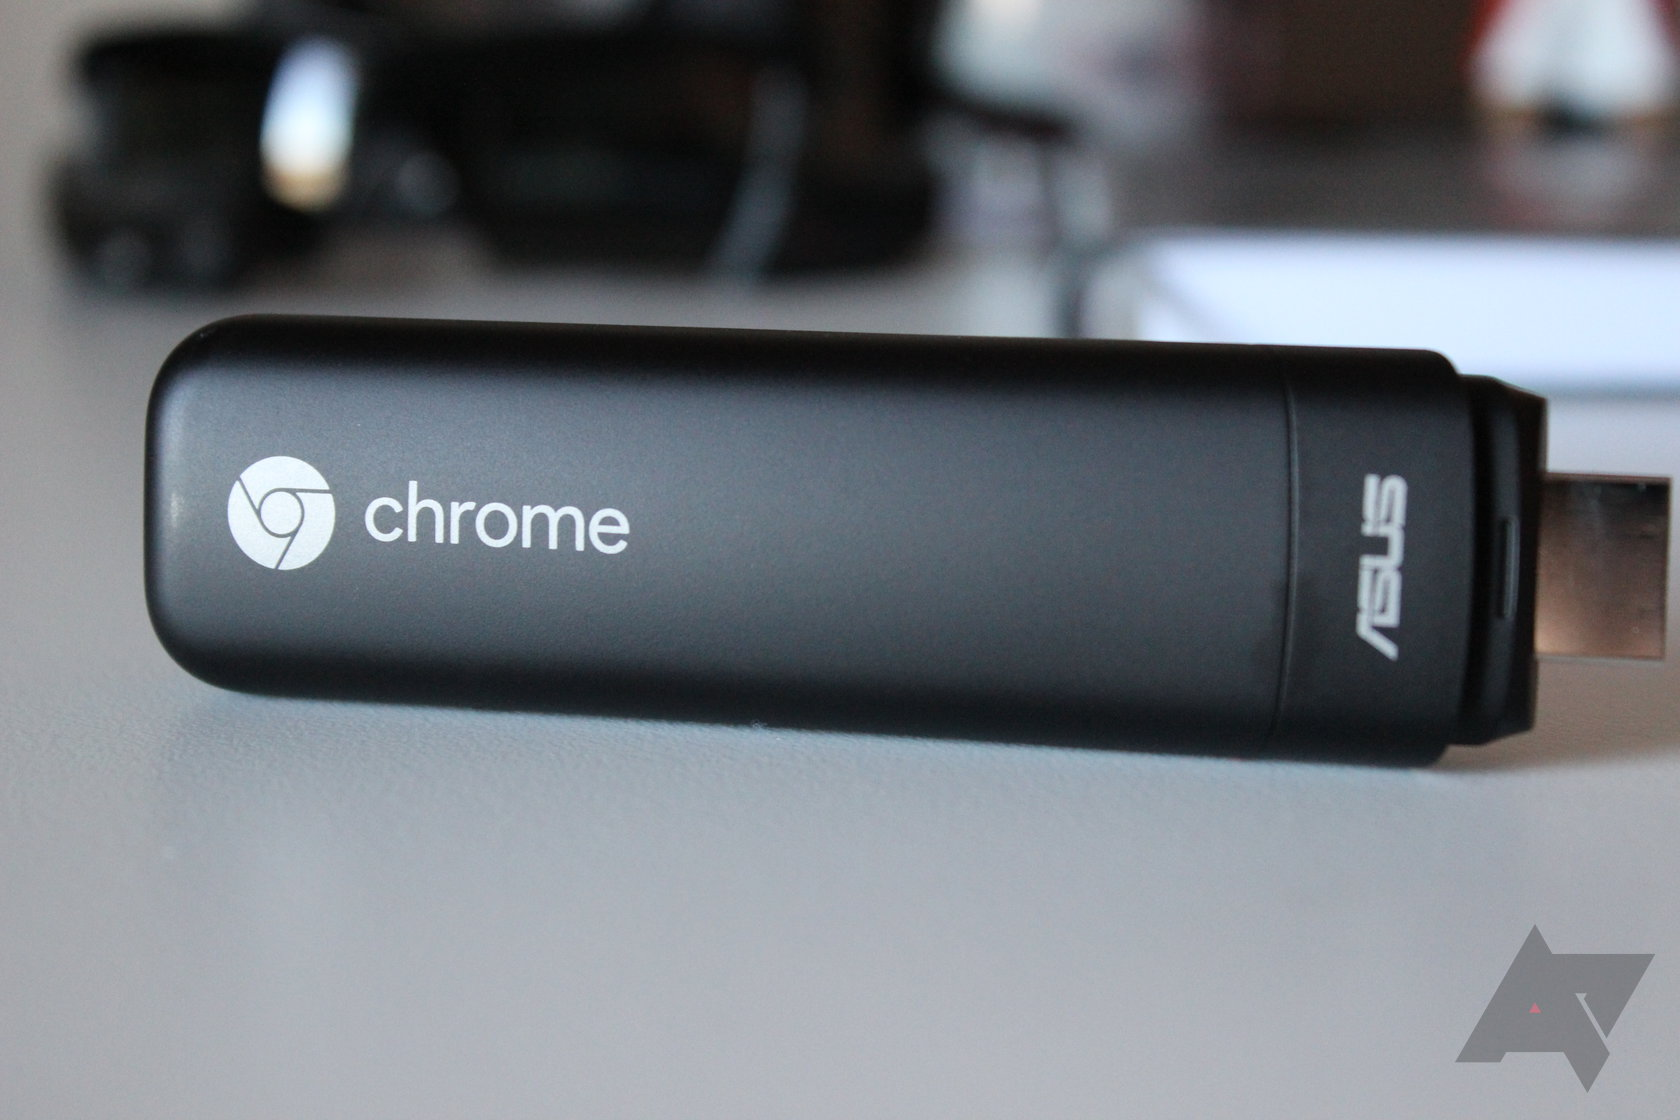 Get a refurbished ASUS Chromebit for just $60 from Newegg